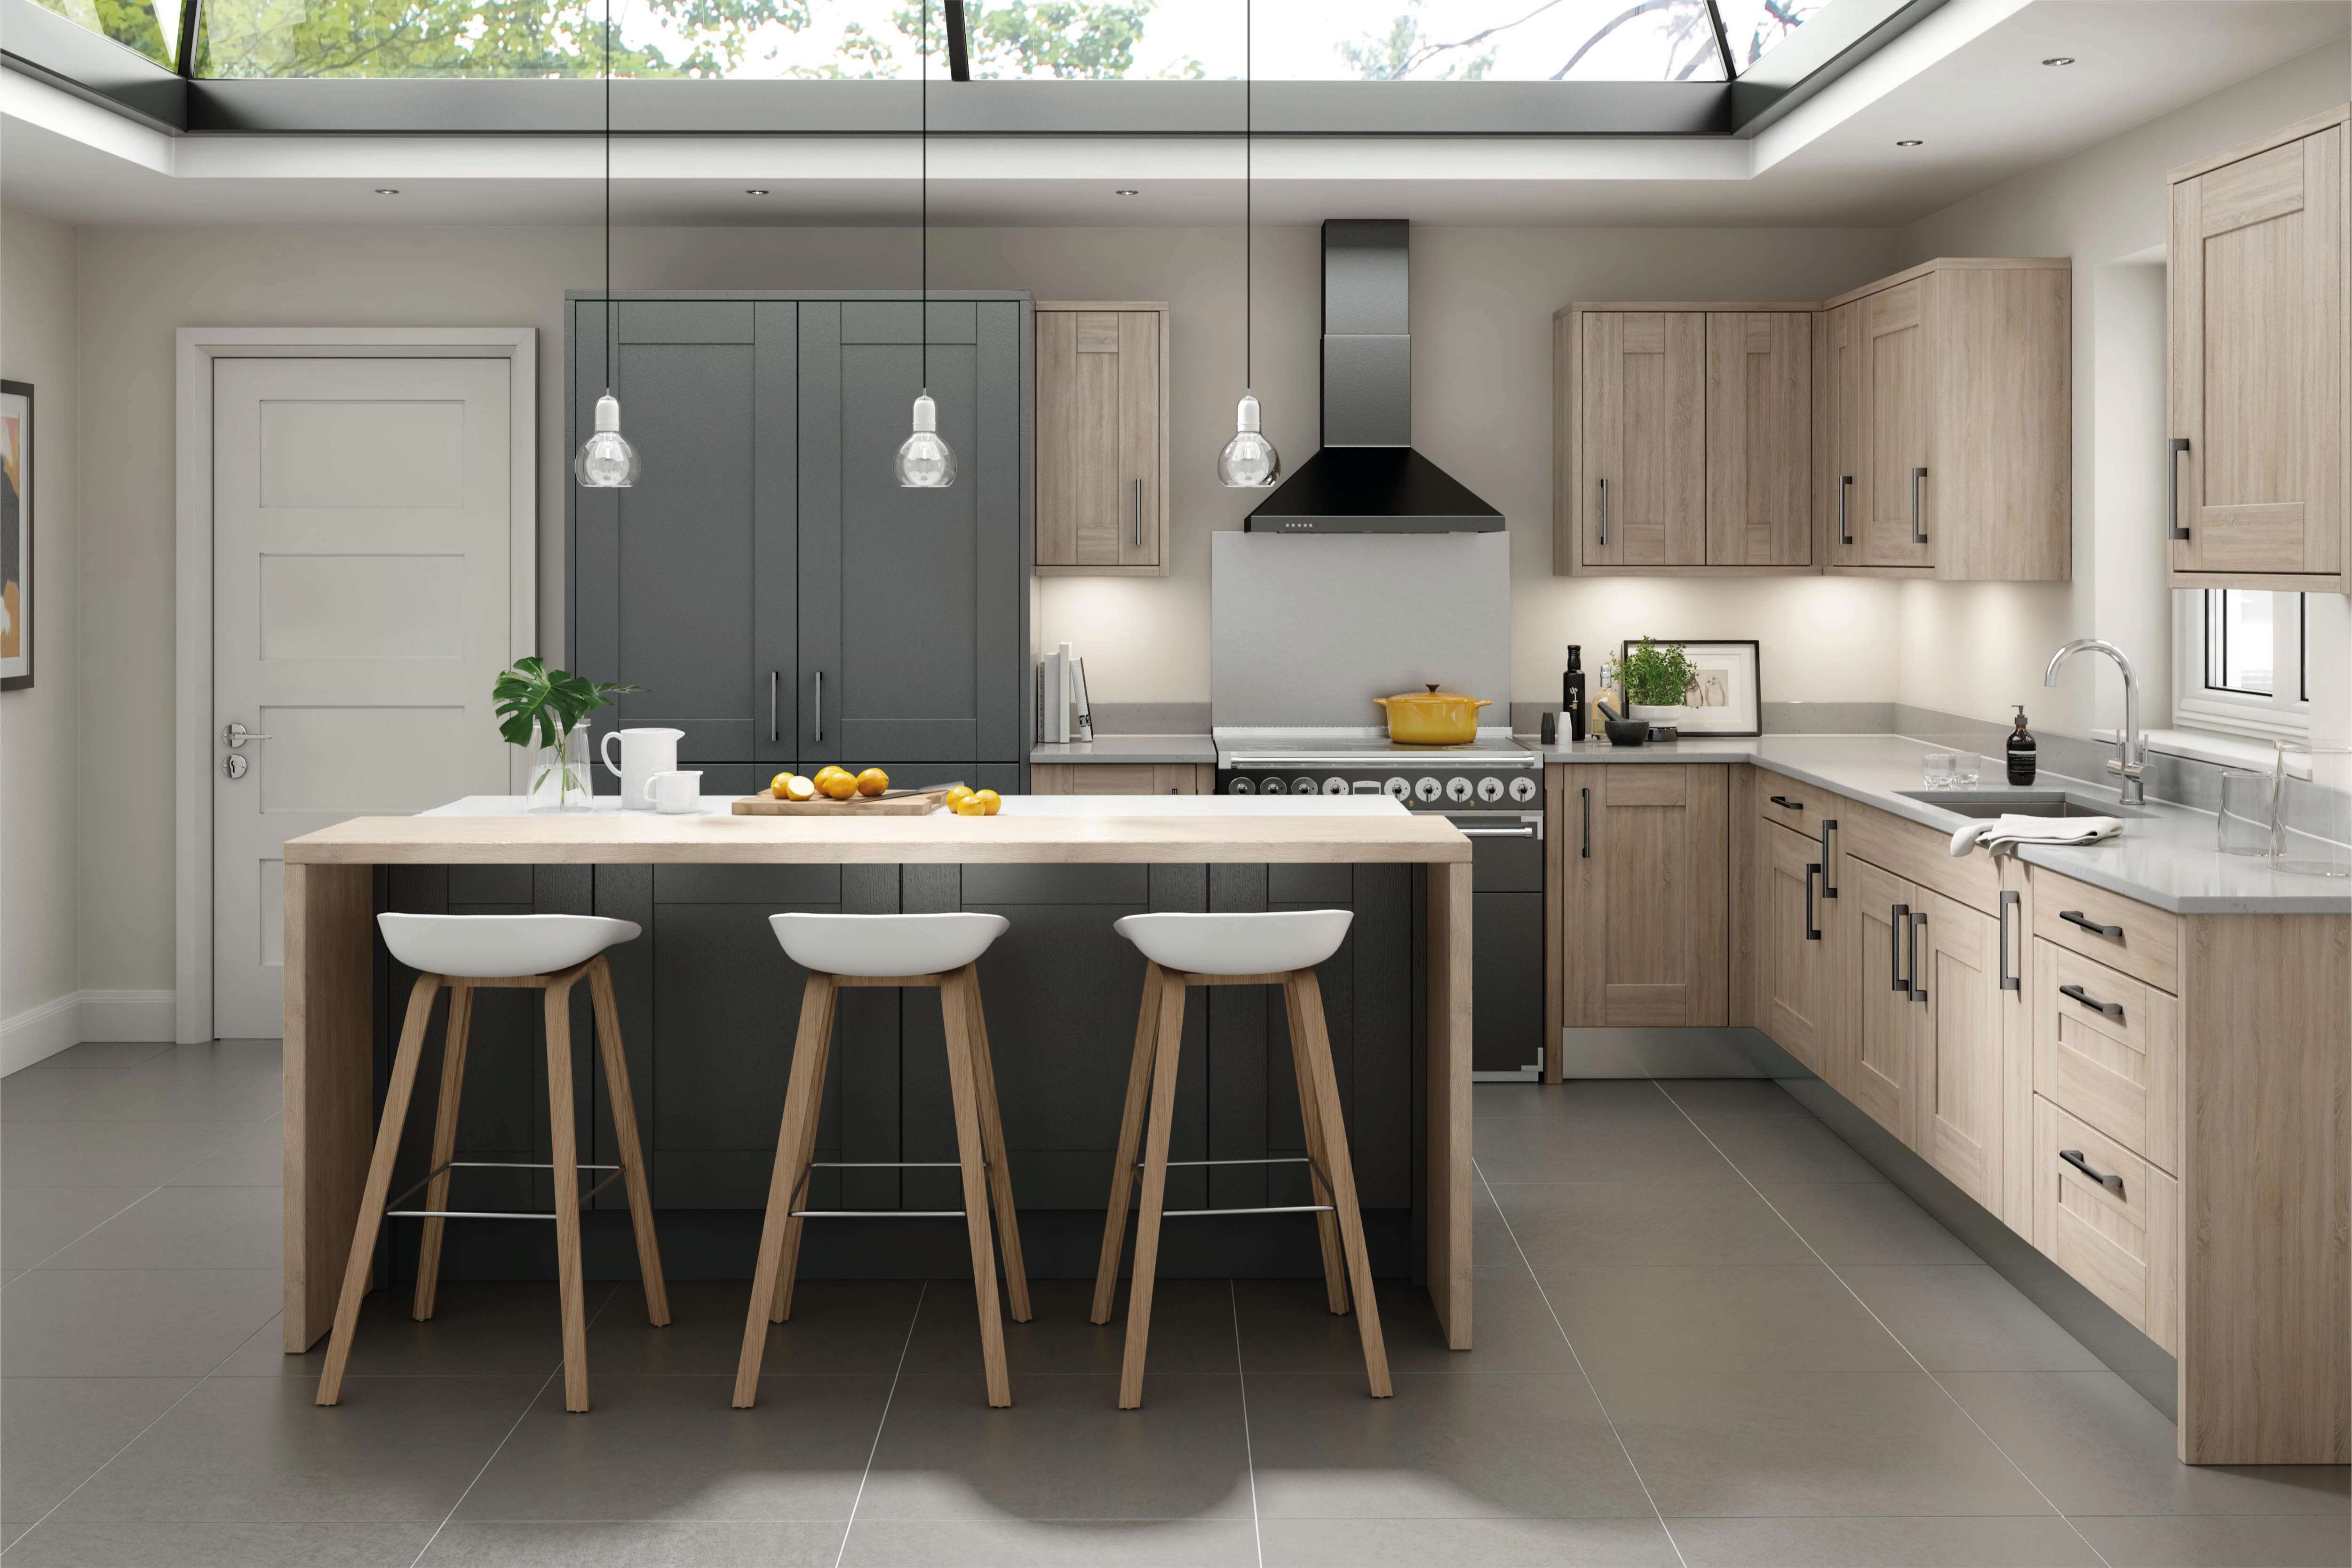 Alchemy-Kitchens-Broadoak-Gallery3